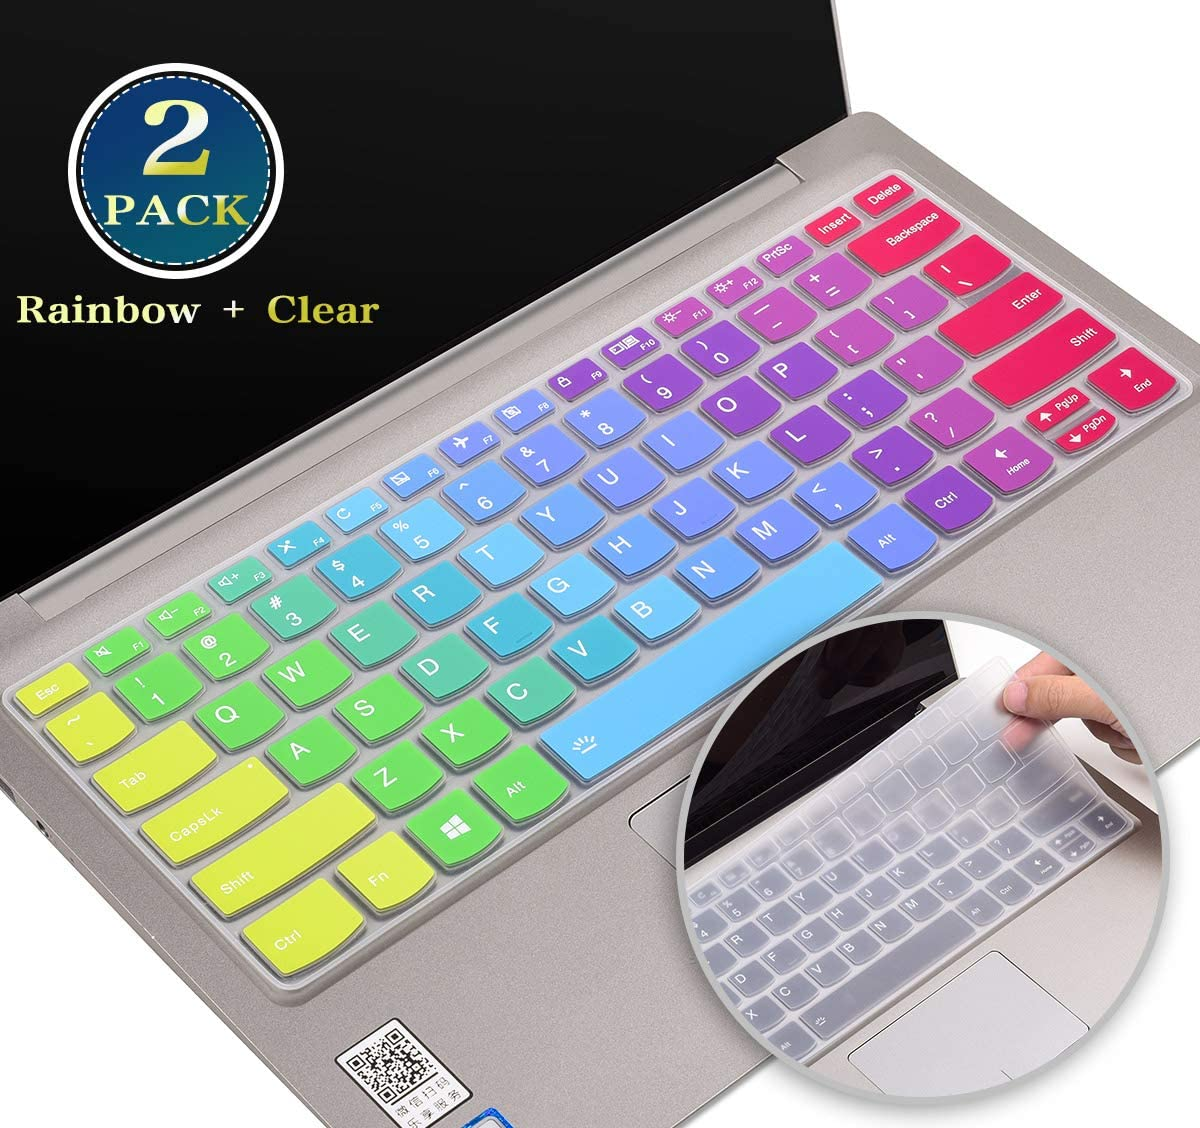 "for Lenovo Yoga C940 C740 Keyboard Cover 14 Inch, Silicone Keyboard Skin for Lenovo Flex 15/Flex 14, Lenovo Yoga C930 13.9"",Lenovo Yoga 720 13.3"" 12.5"" Protector(Rainbow+Clear)"